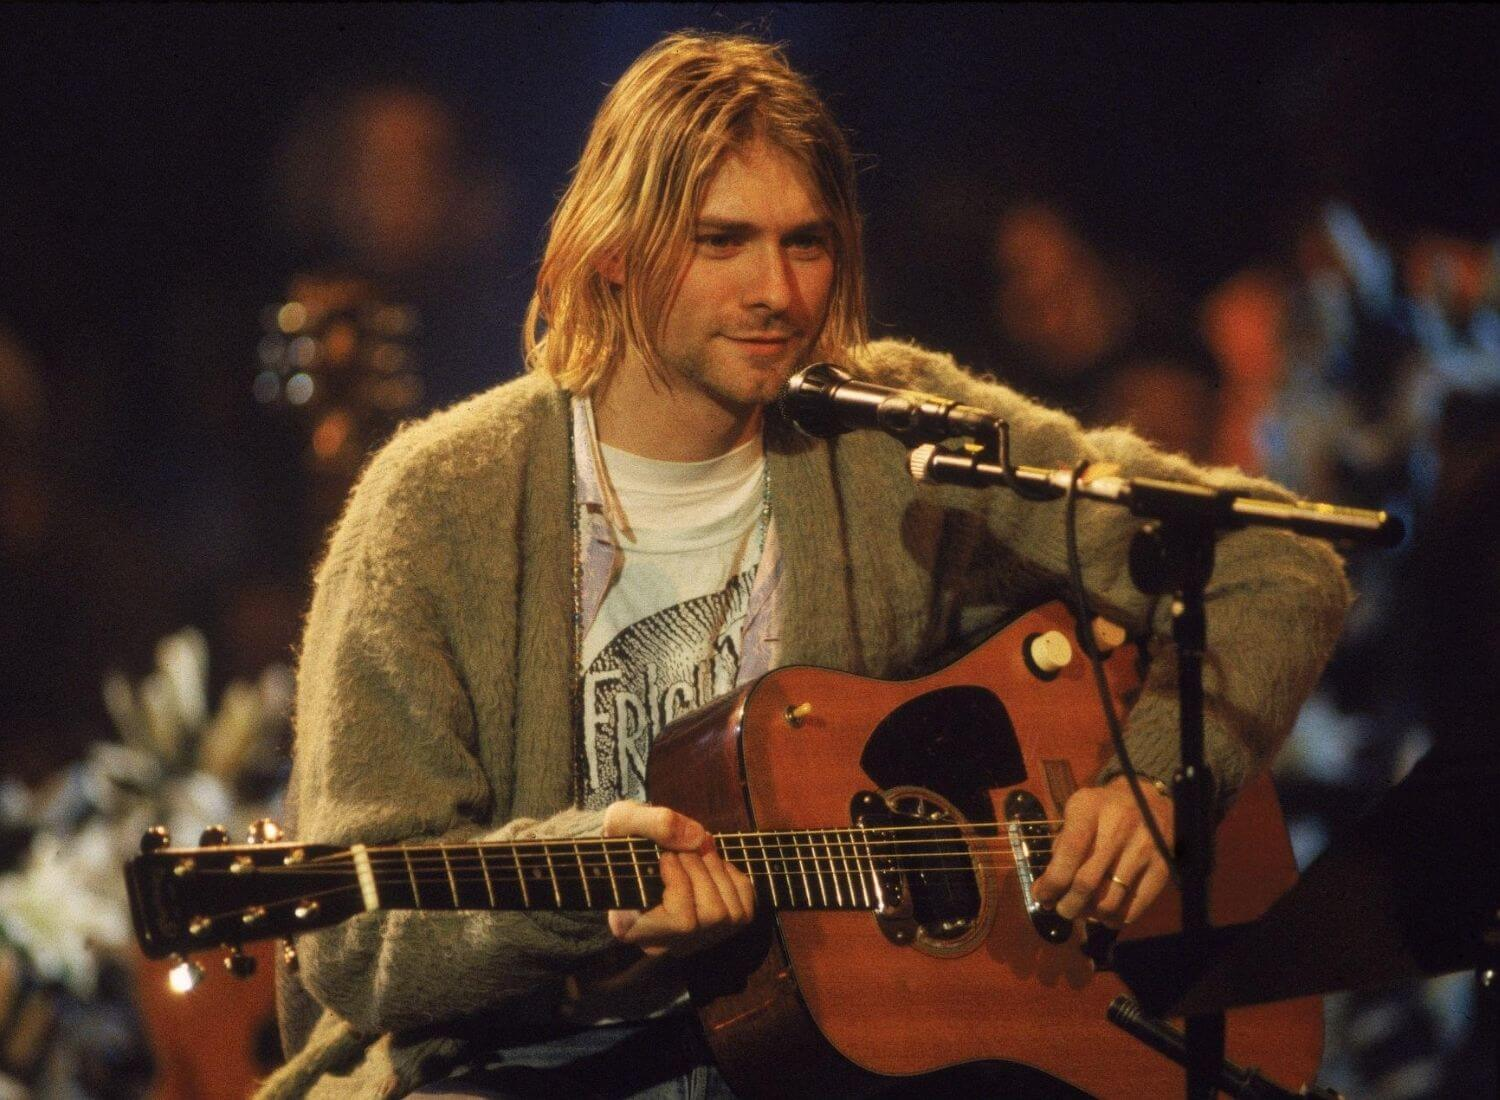 The Mystery Behind The Death Of Kurt Cobain